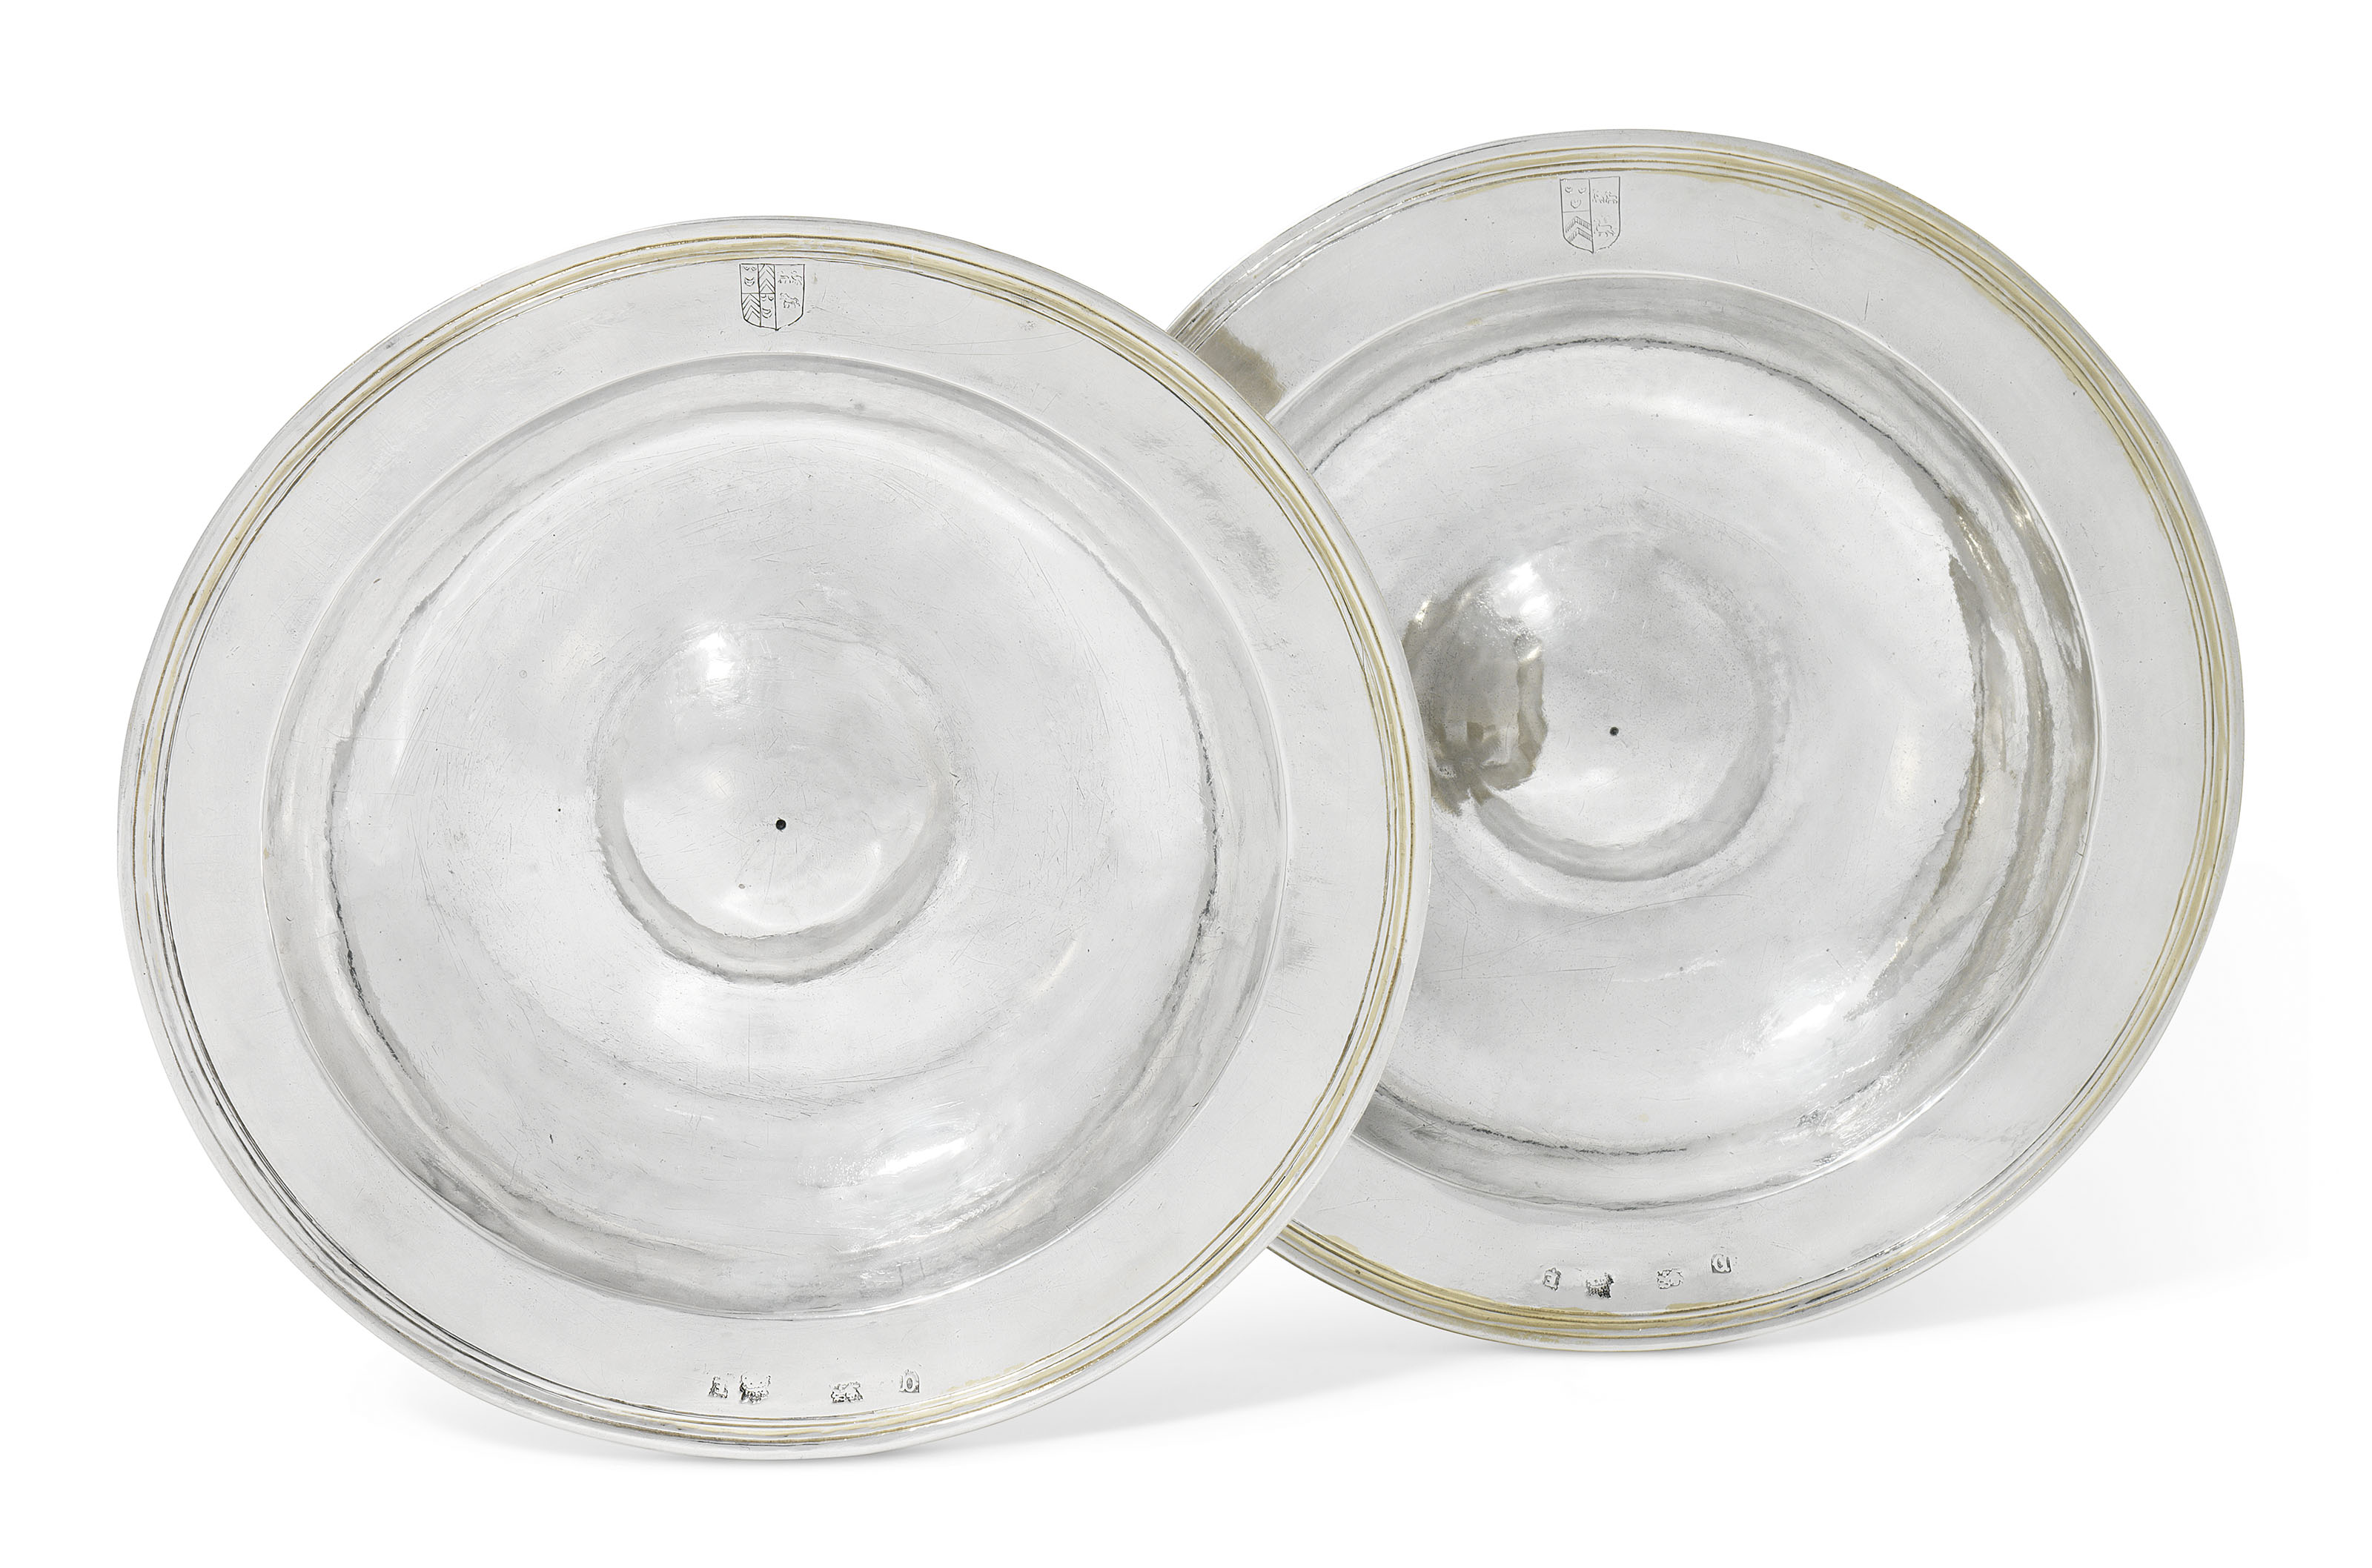 A PAIR OF ELIZABETH I SILVER DISHES FROM THE 'ARMADA' SERVICE